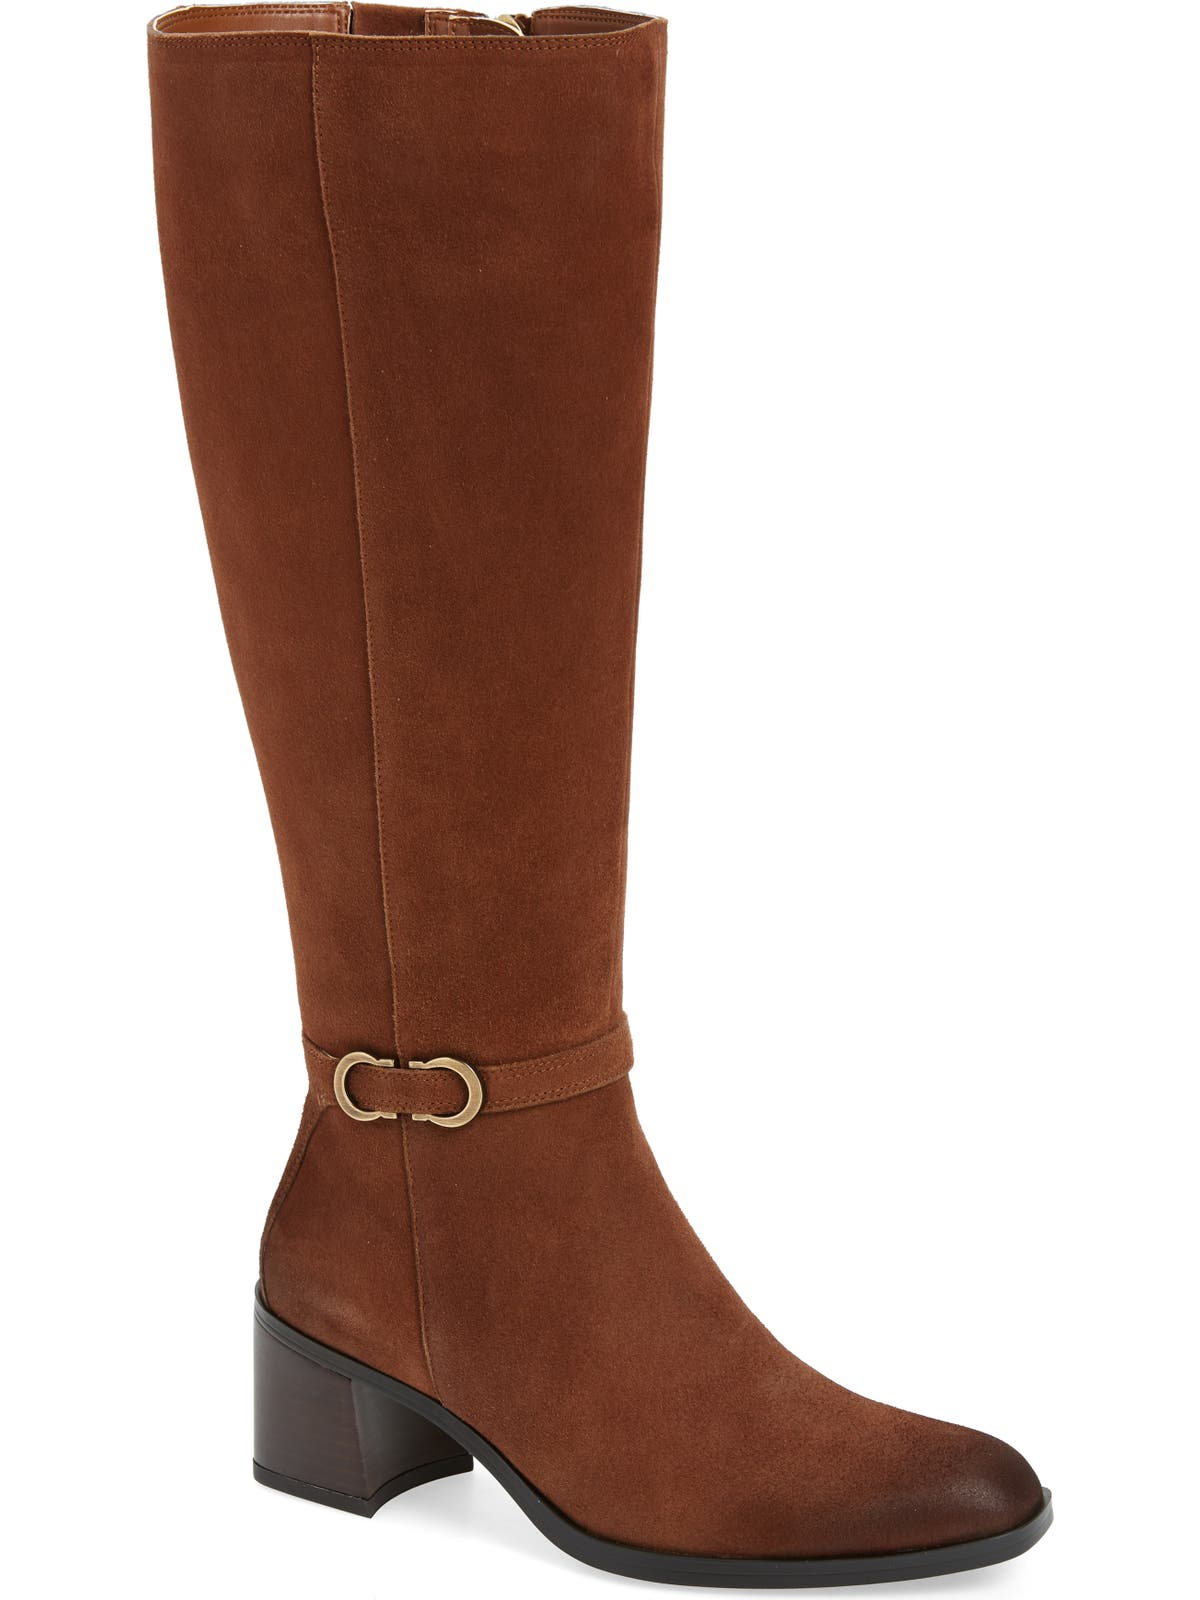 Nordstrom Women's Shoes Sale: Up to 74% off on 3000s of Styles